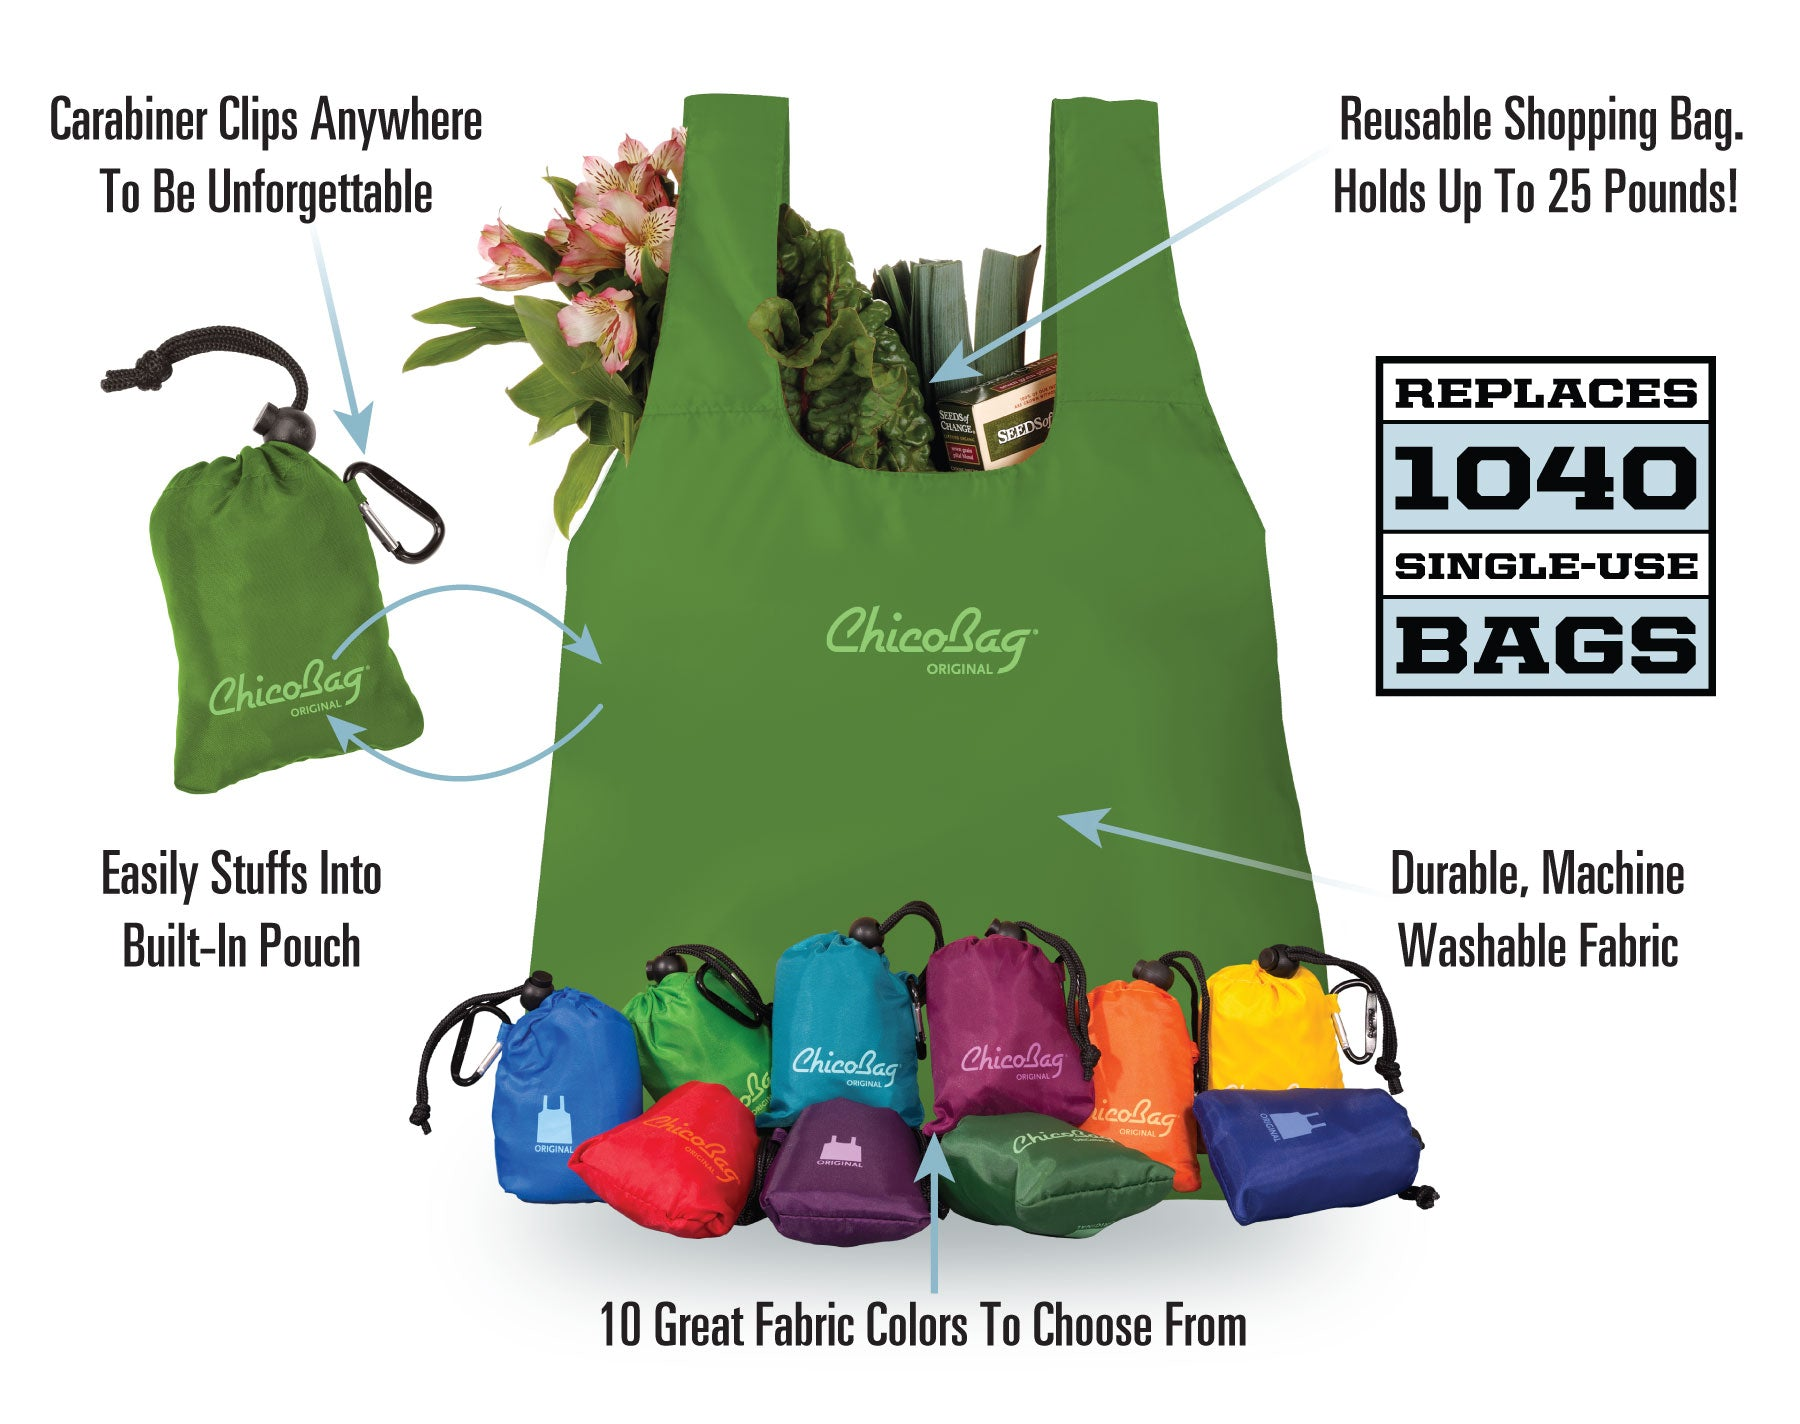 Highlights and selling features of the ChicoBag original shopping tote. The original tote replaces 1040 single-use bags.